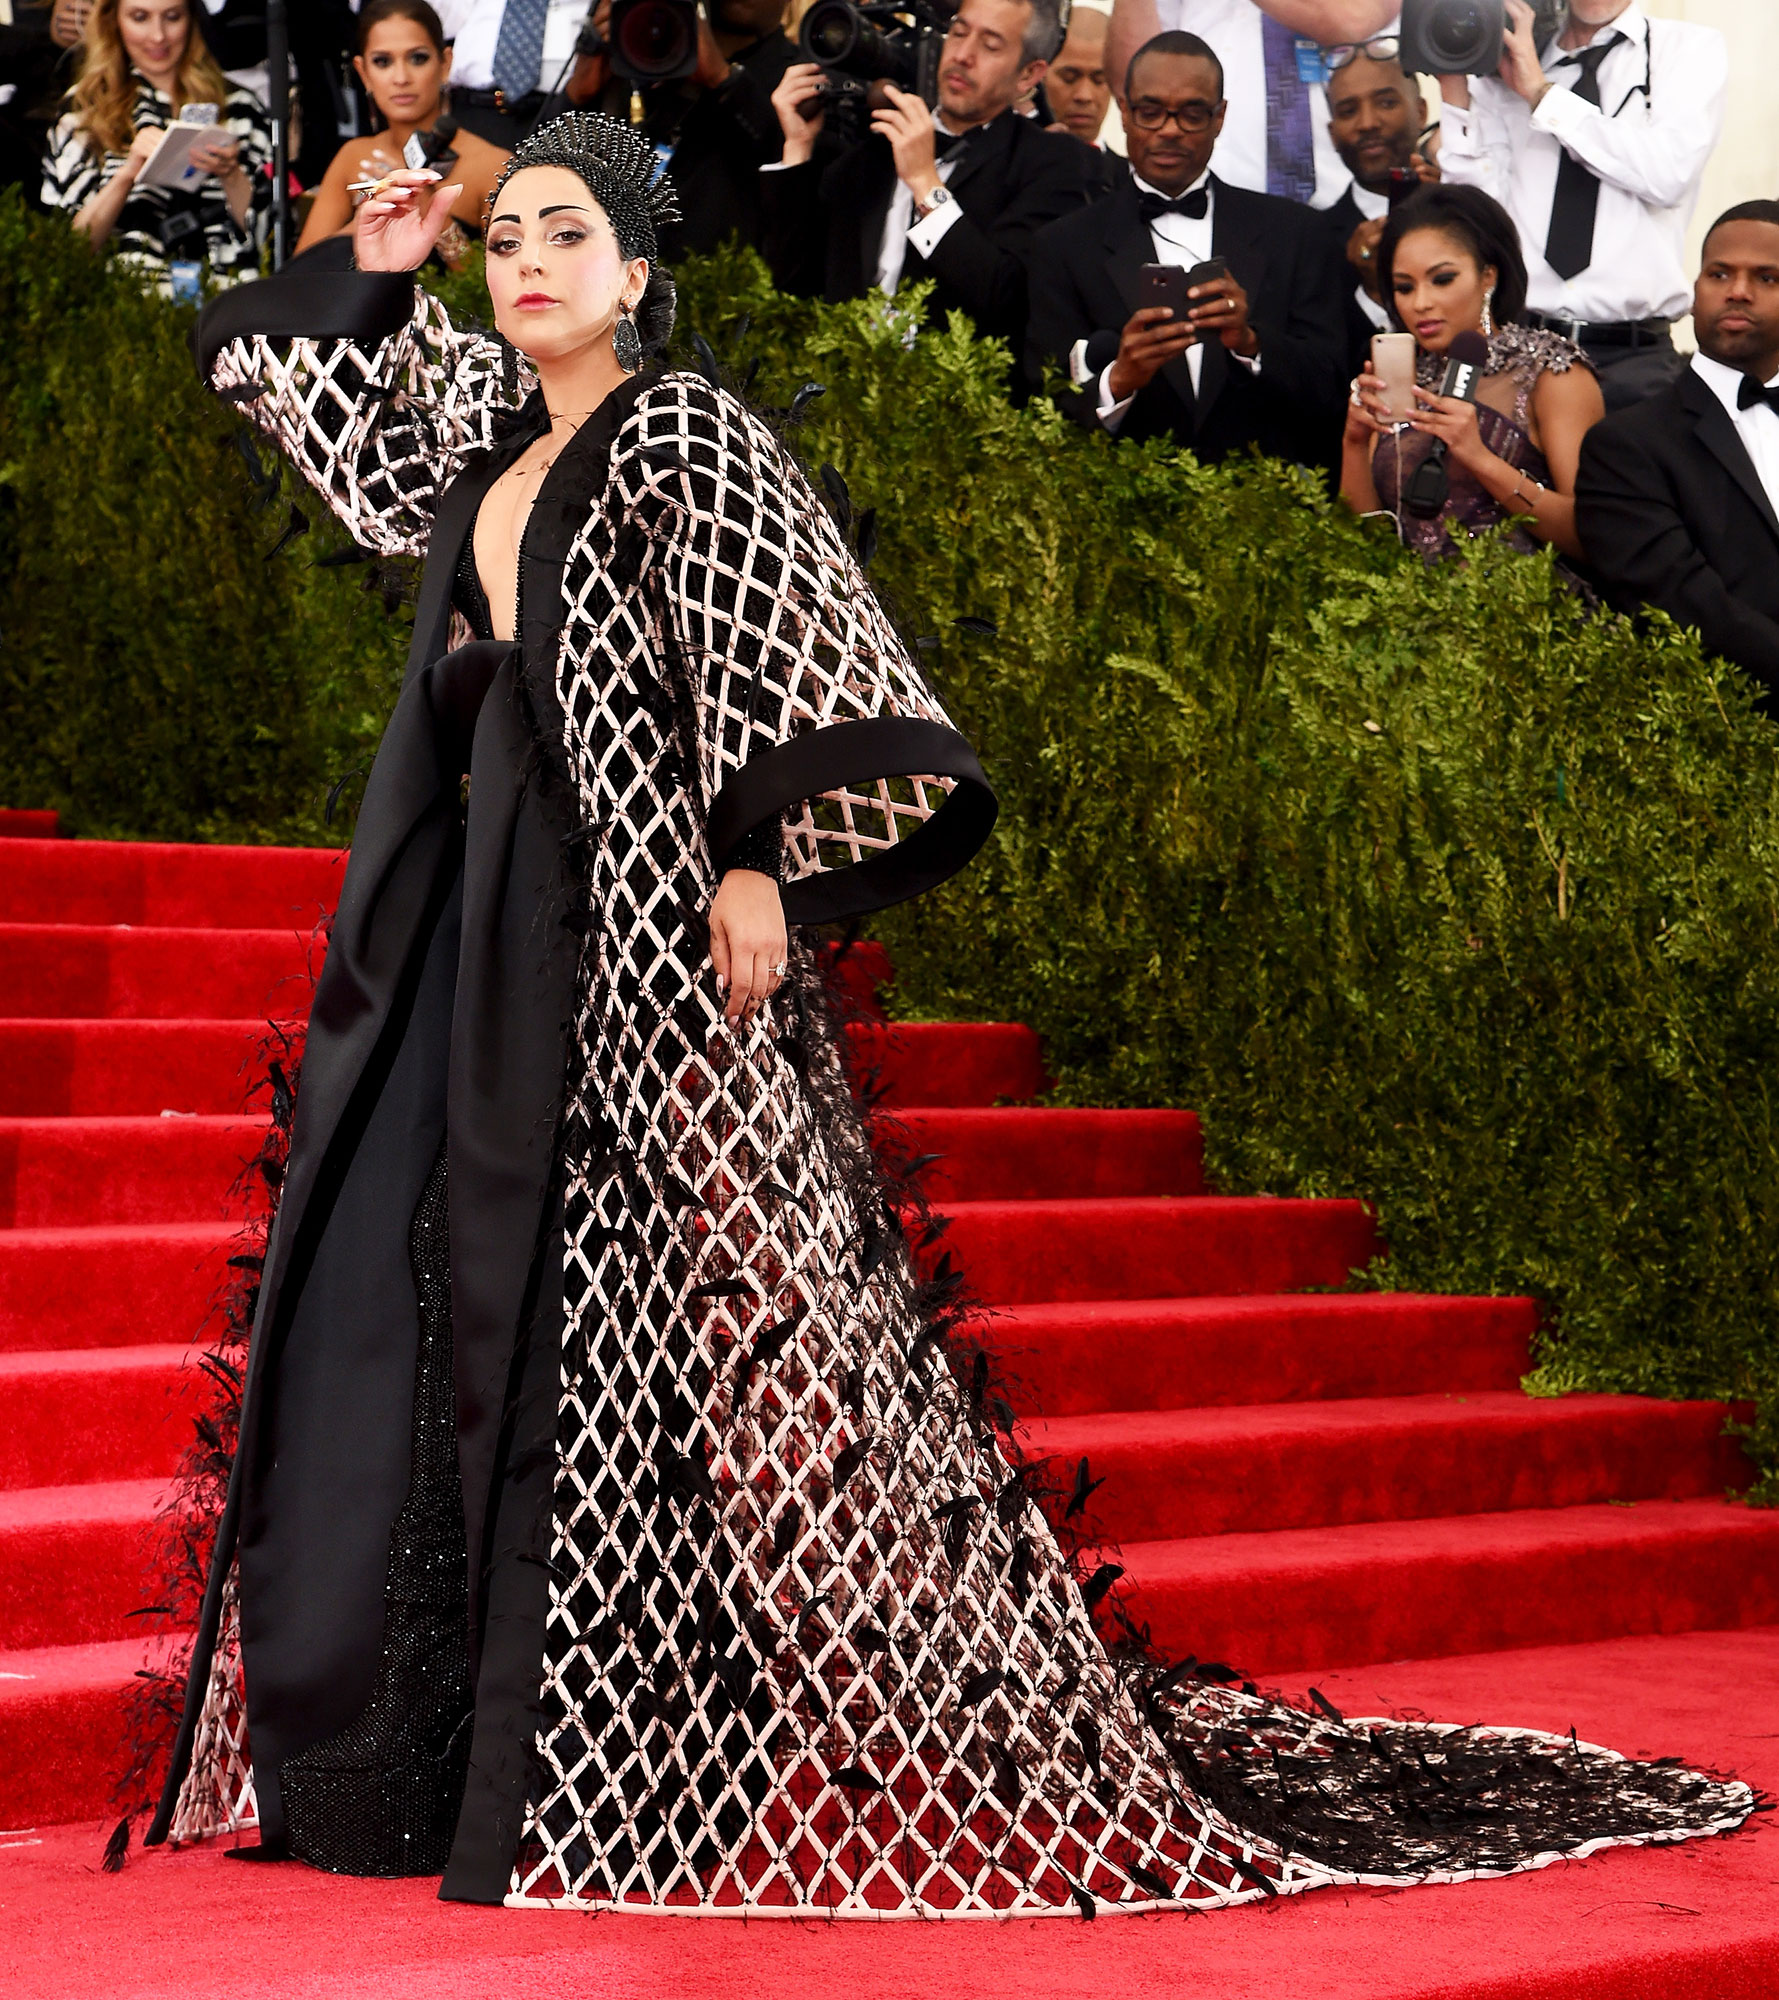 Lady Gaga The Wild Met Gala Red Carpet Fashion Looks We Can't Stop Thinking About - In Alexander Wang.